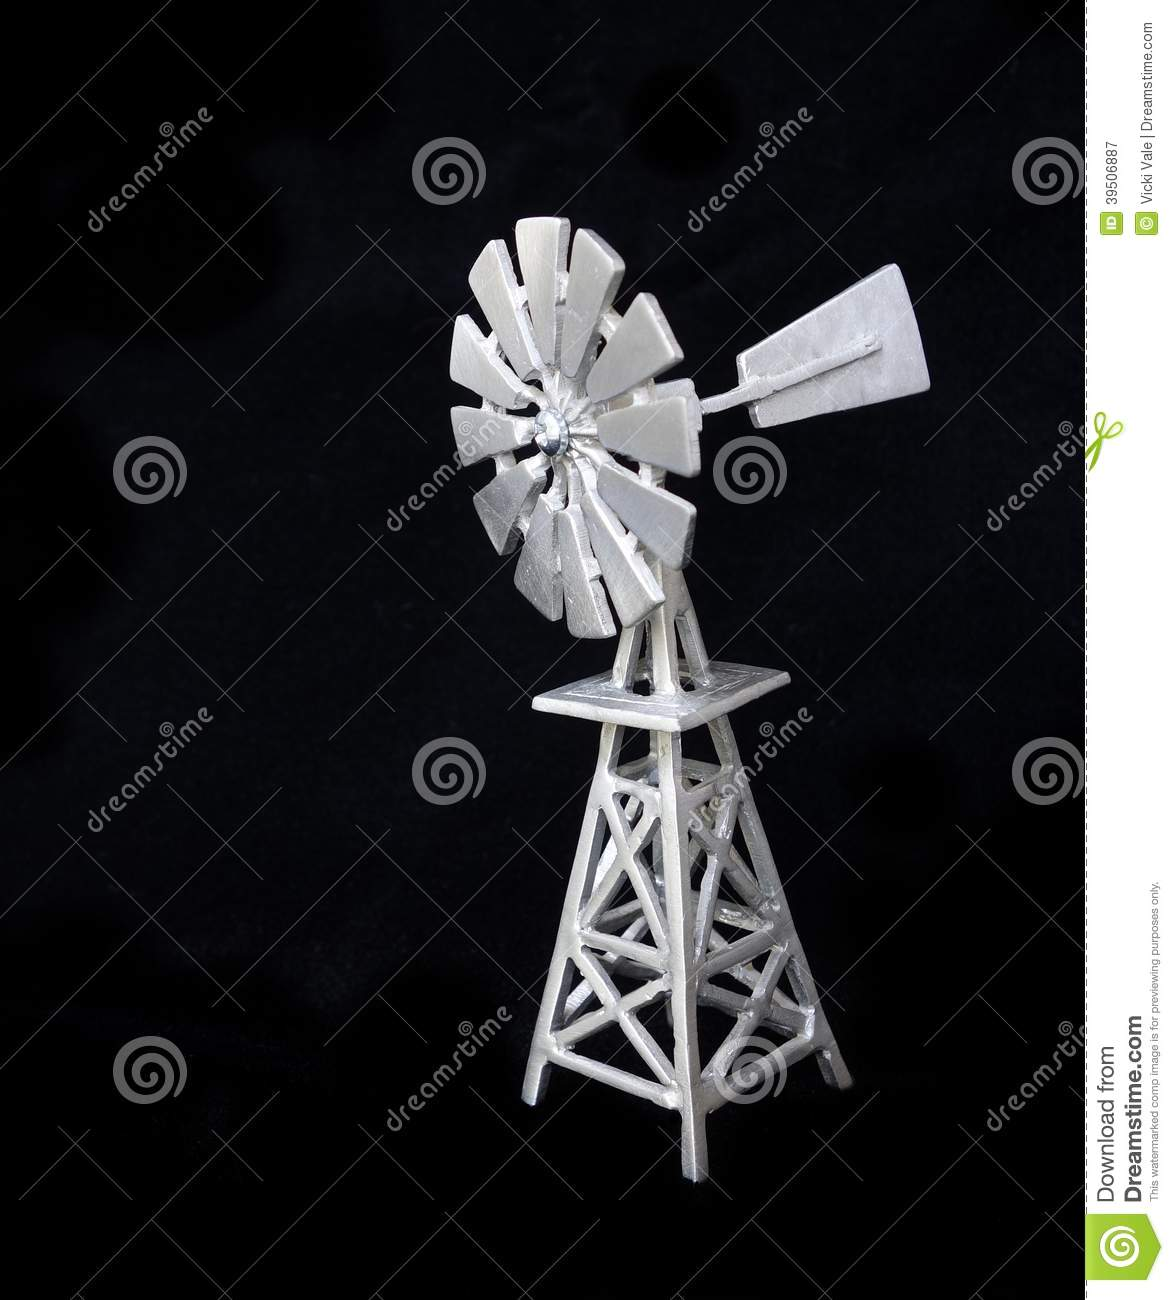 Isolated Pewter Windmill On Black Background.